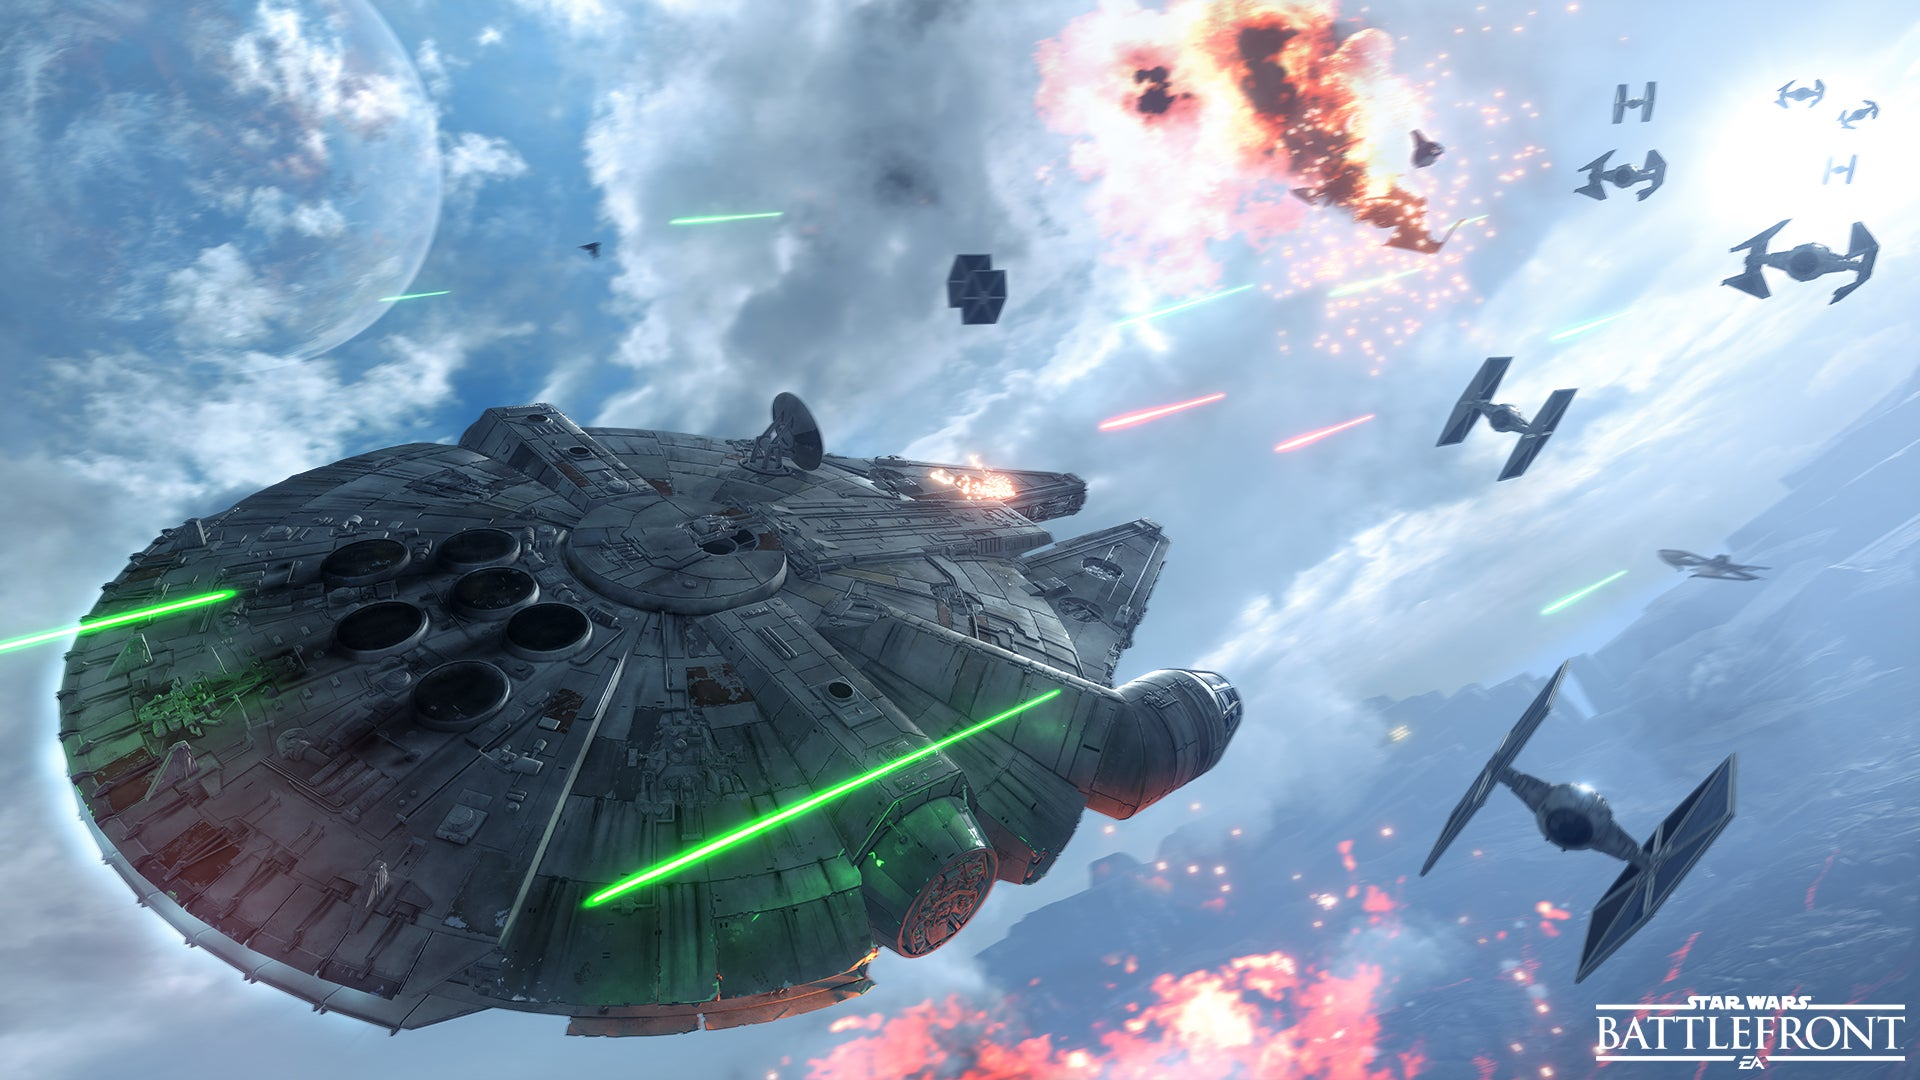 Star Wars Battlefront Ea Releases Awesome Live Action Trailer